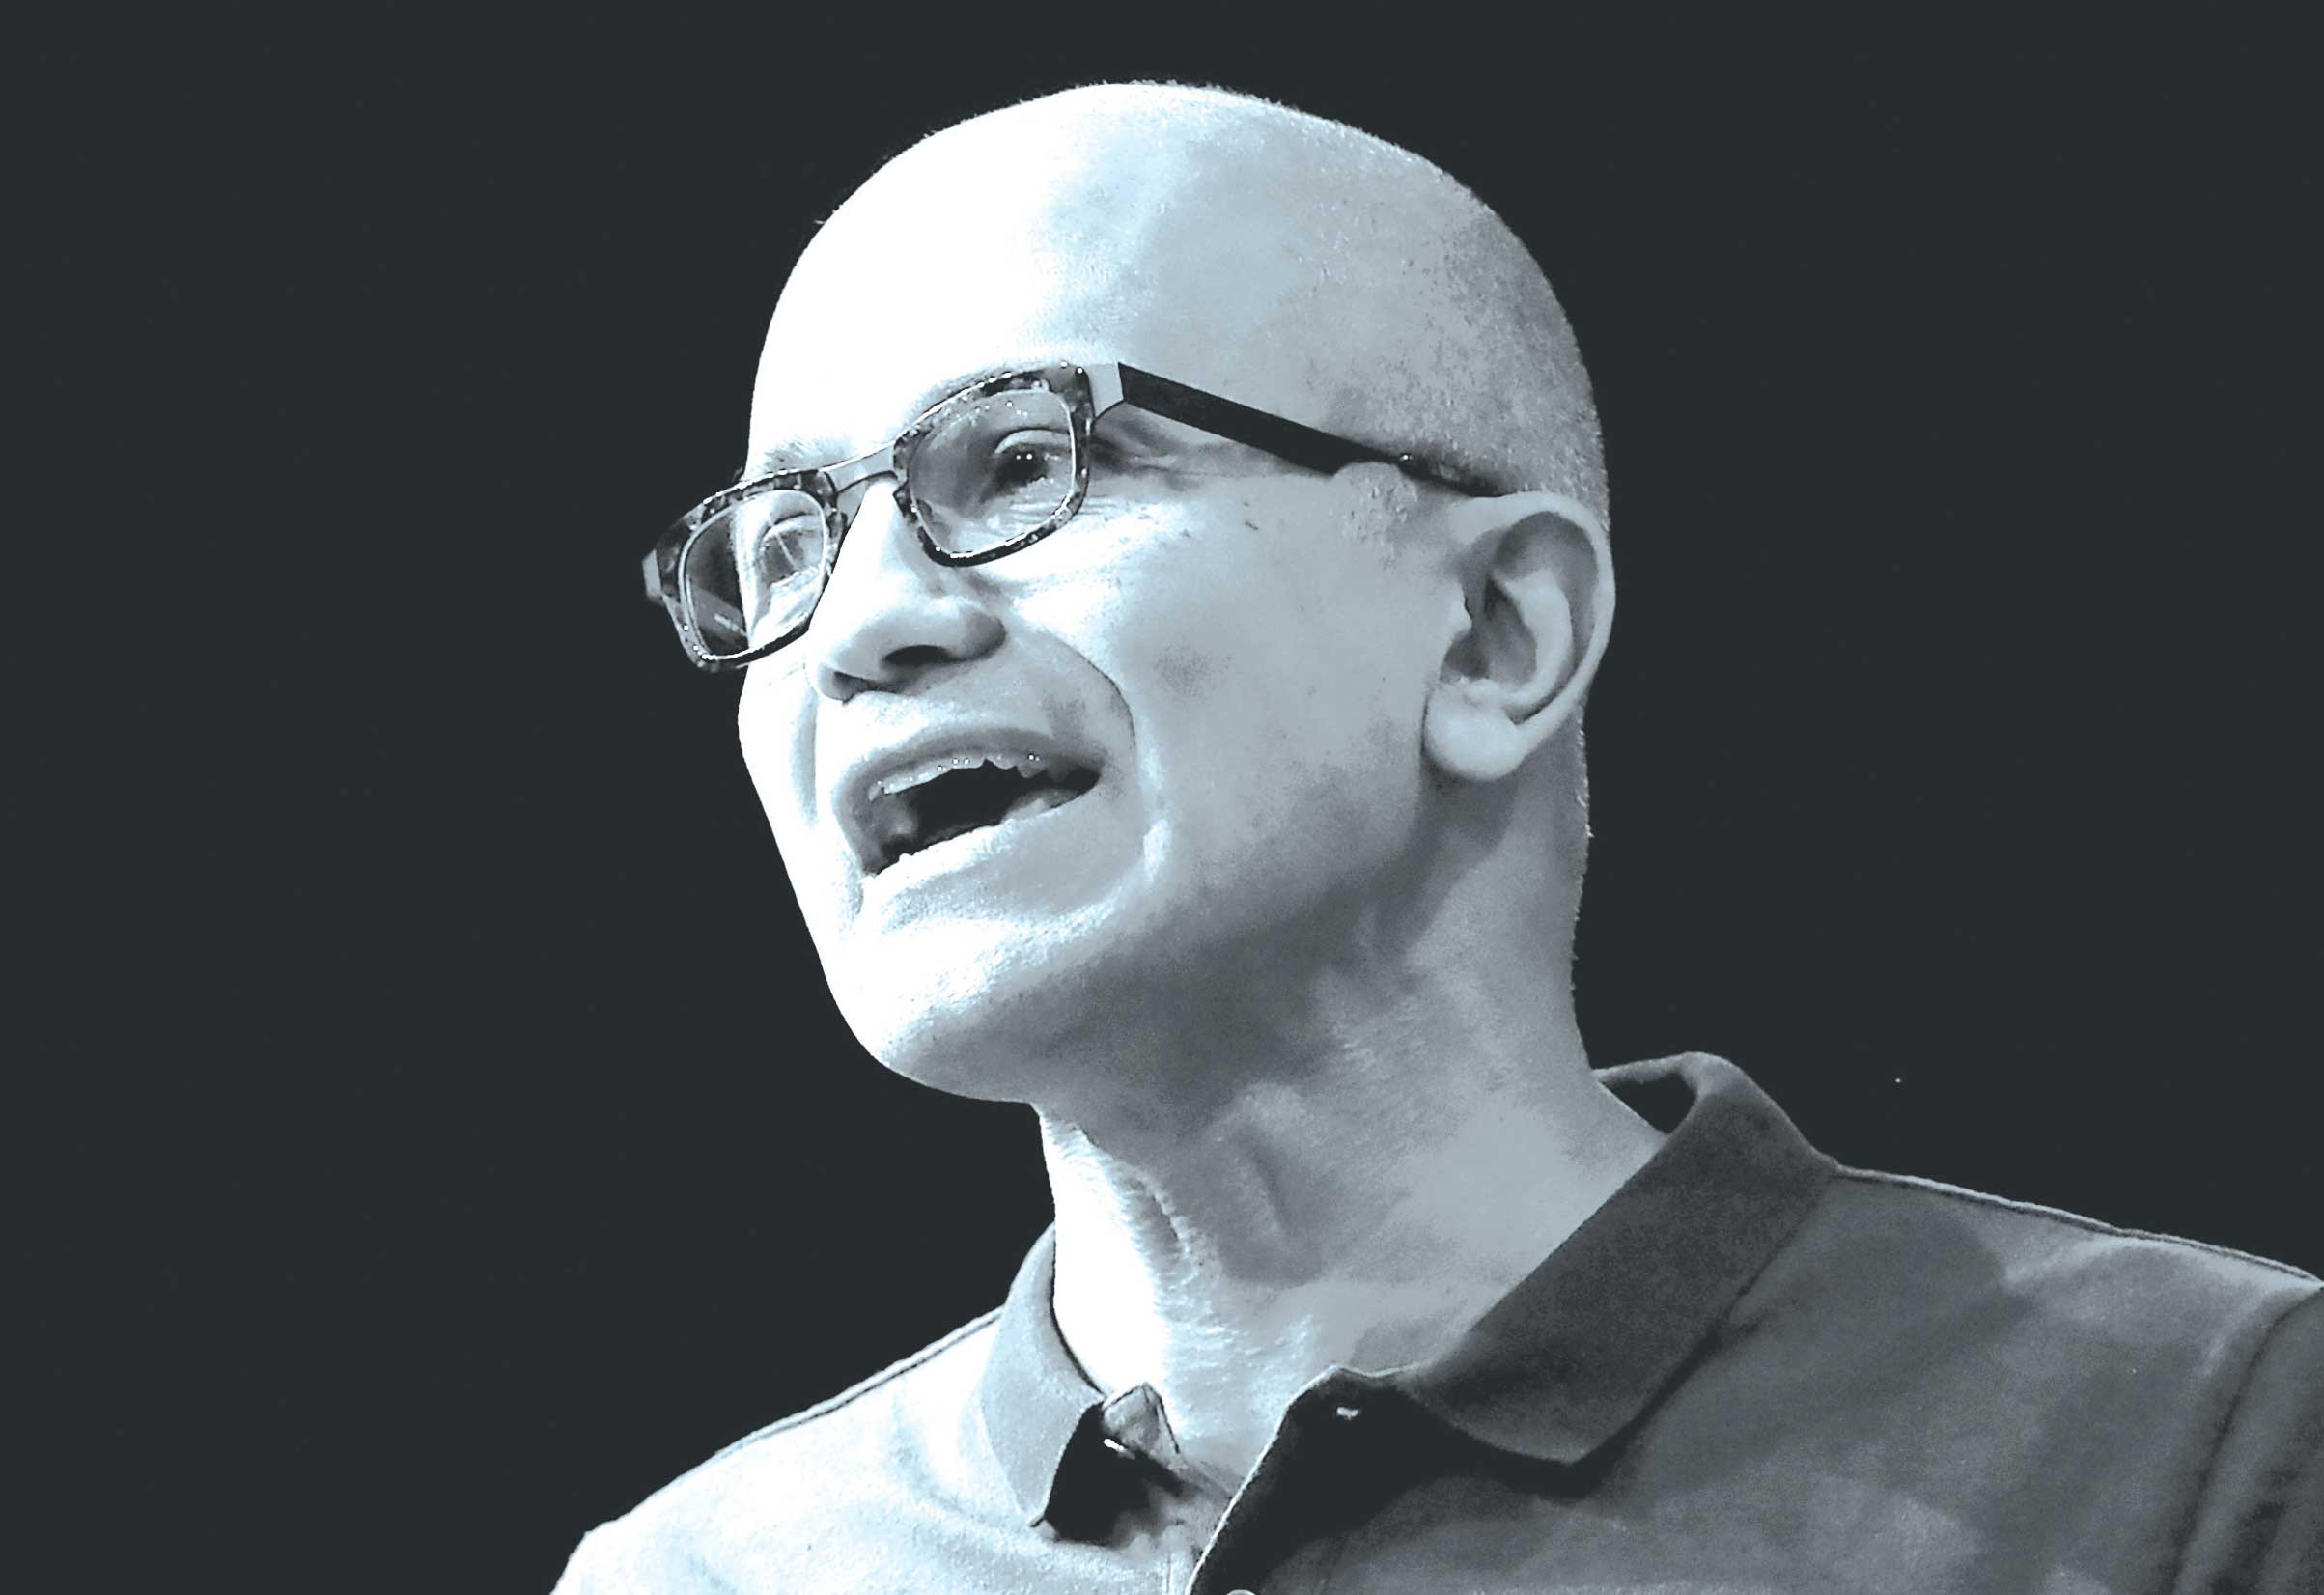 Nadella brings the soul back to Microsoft